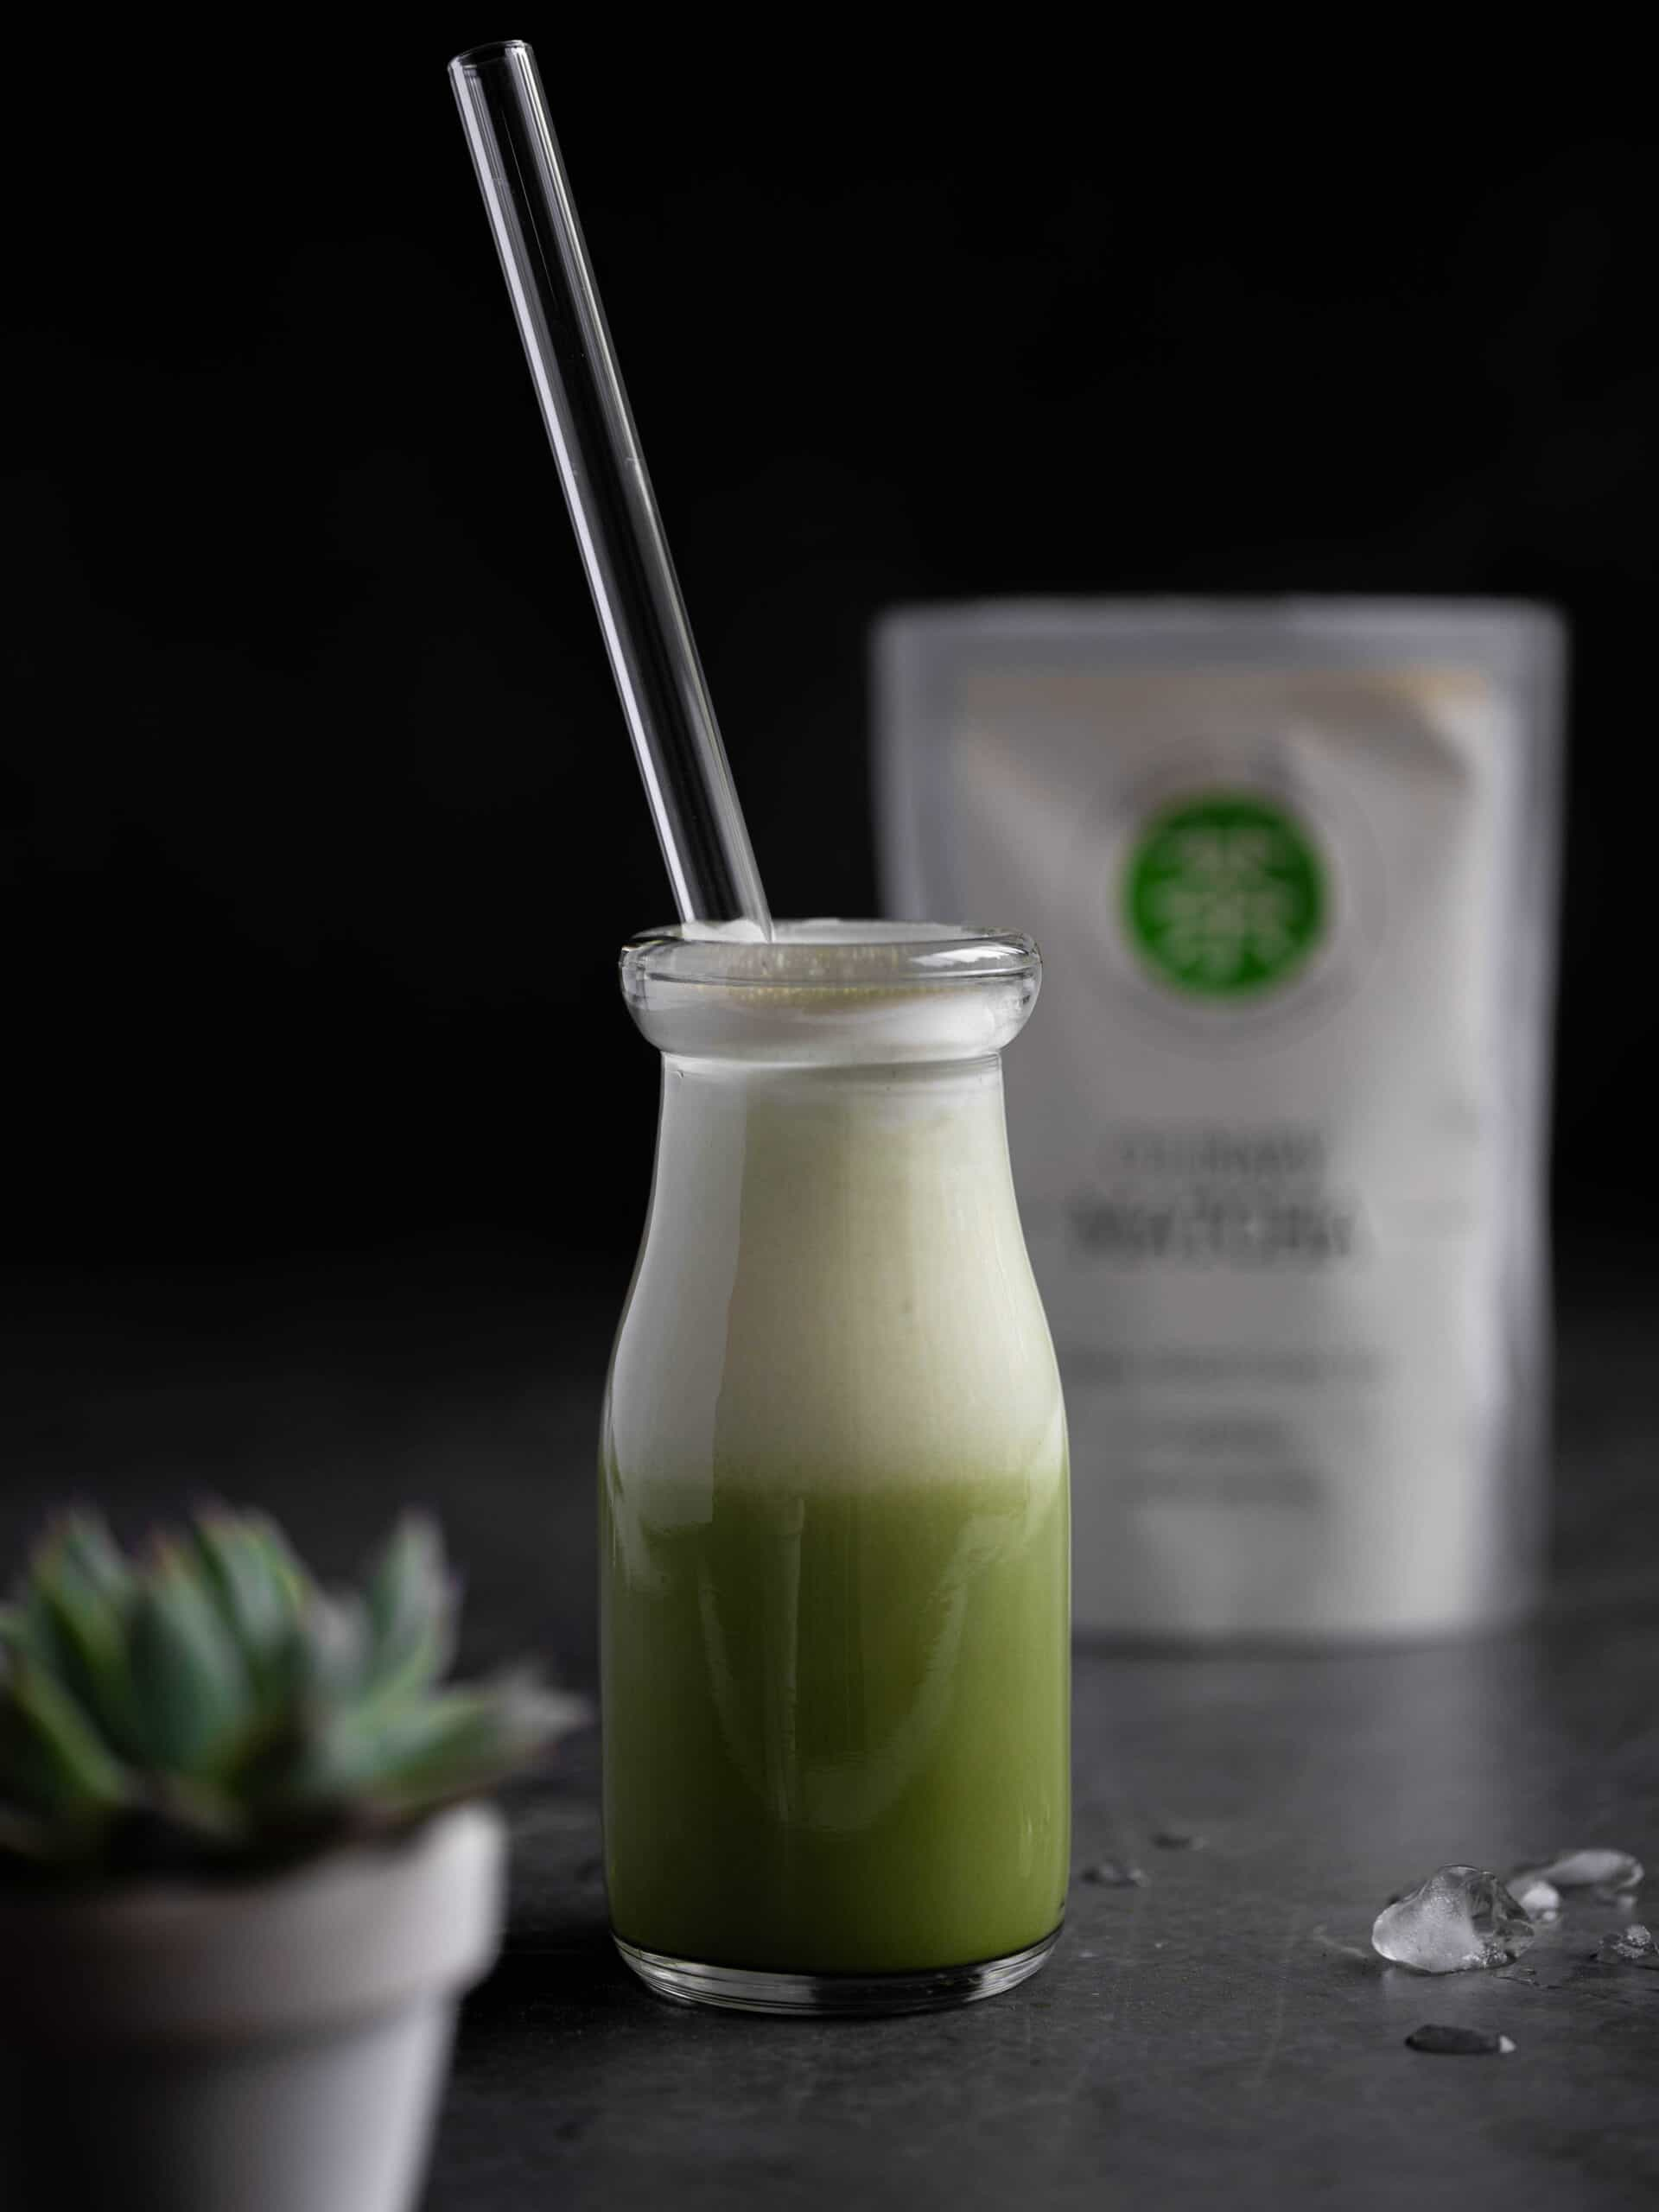 A matcha latte with a straw